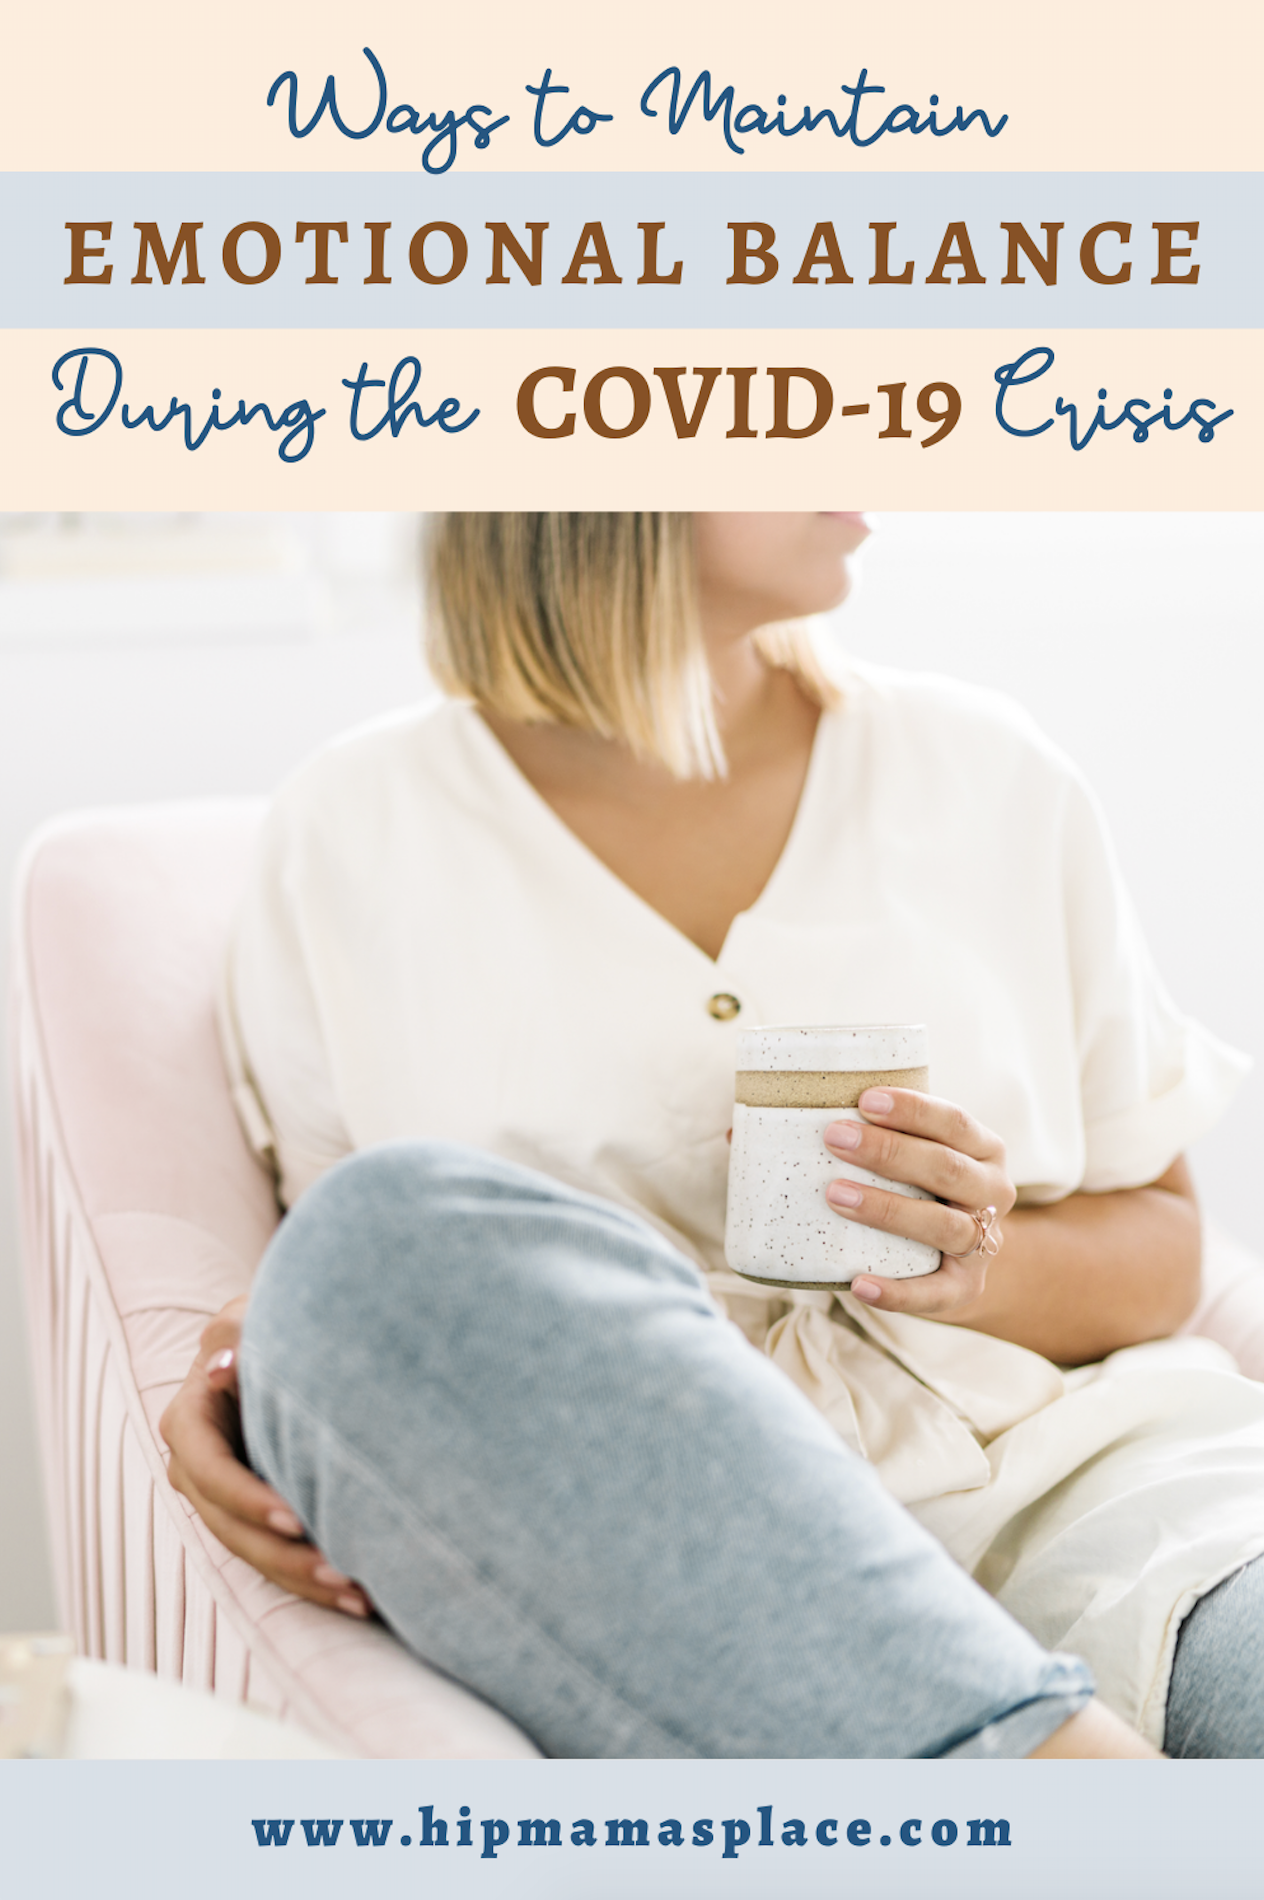 Doctors will tell you that the way you feel emotionally can have a profound impact on the way your body reacts to new threats, including the COVID-19 pandemic. Here are 10 smart ways to maintain your emotional balance and mental health during the COVID-19 crisis.  #mentalhealth #emotionalbalance #quarantine2020 #coronavirus #COVID19